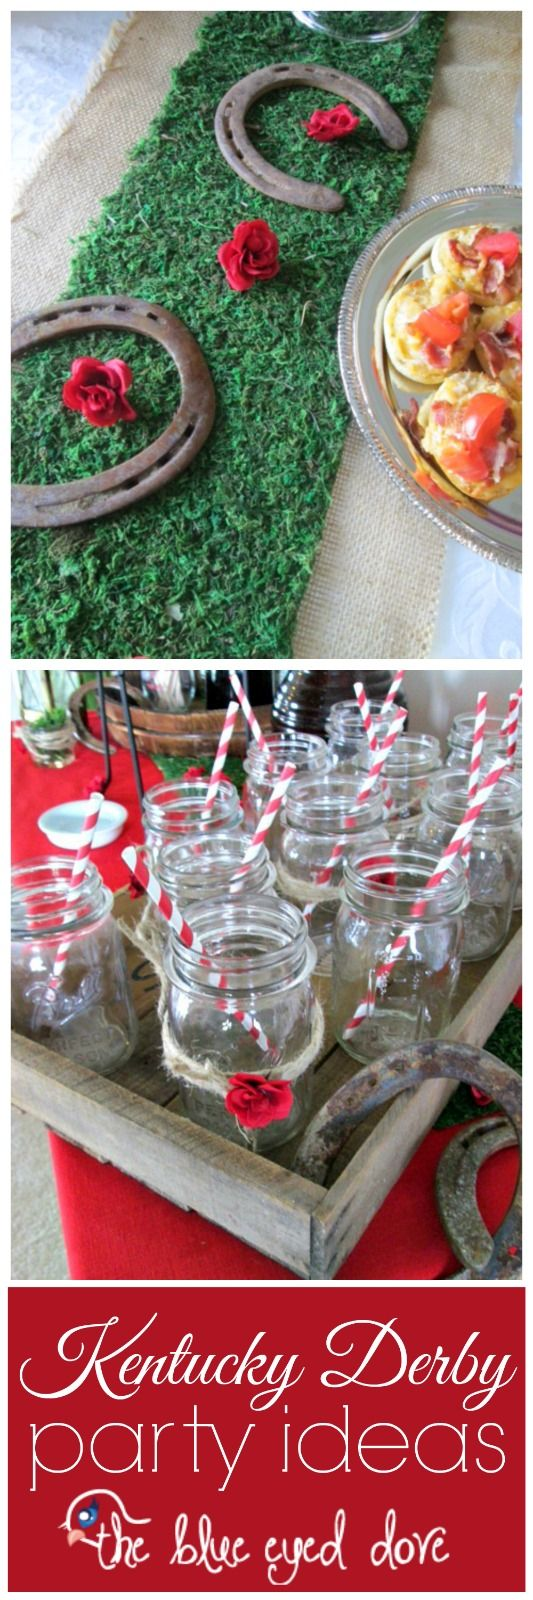 Images about kentucky derby party ideas on pinterest